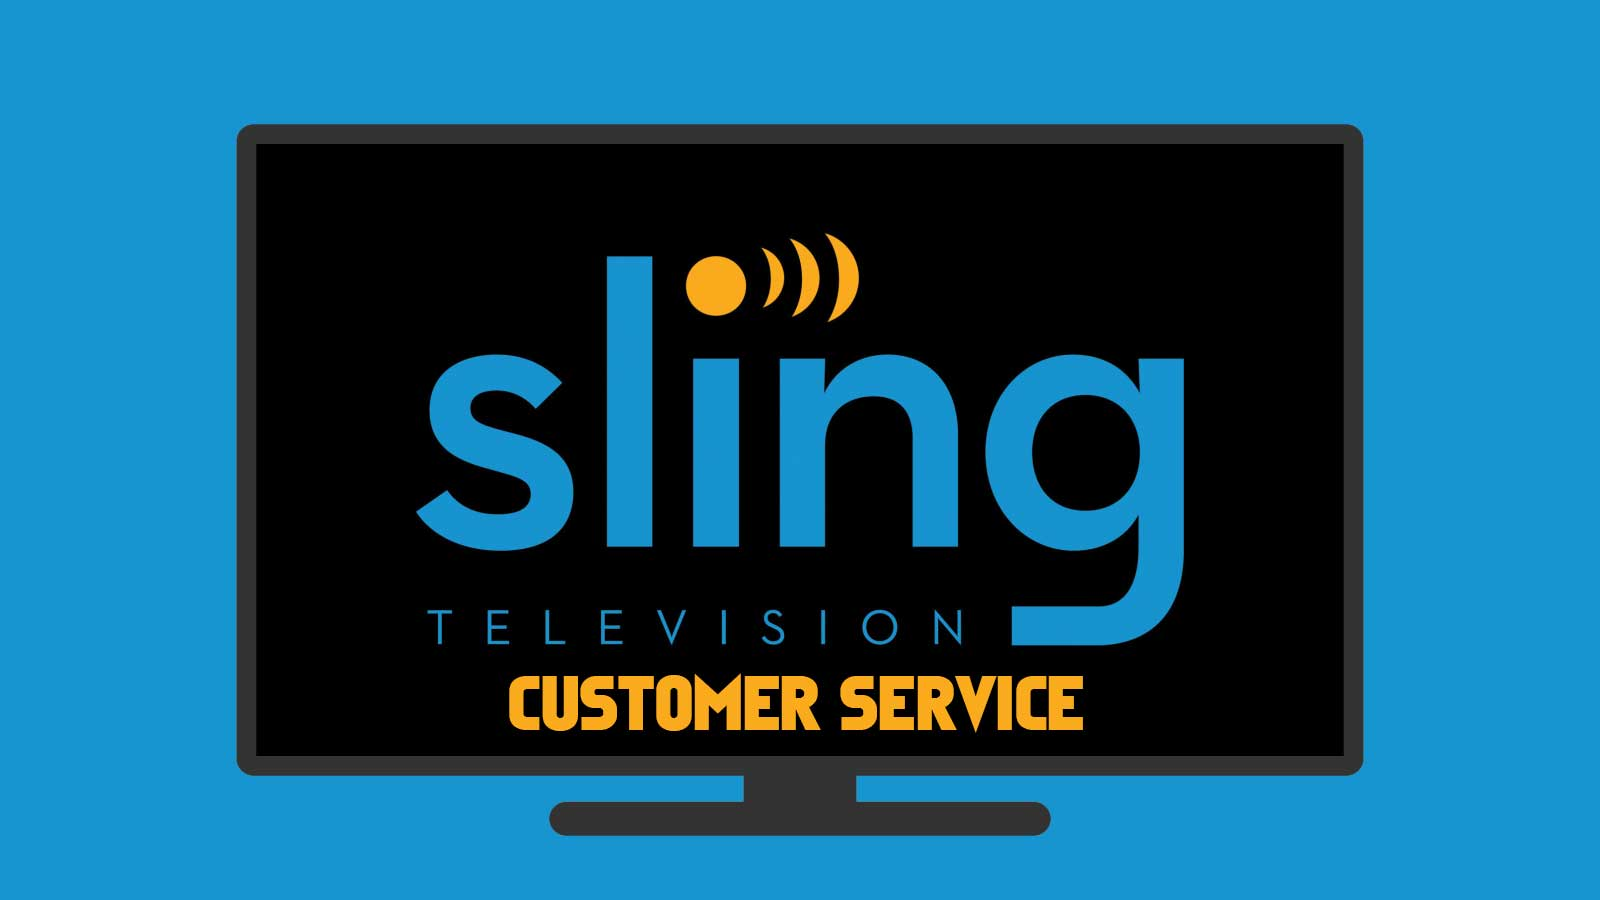 Sling Tv Customer Service Everything You Are Looking For